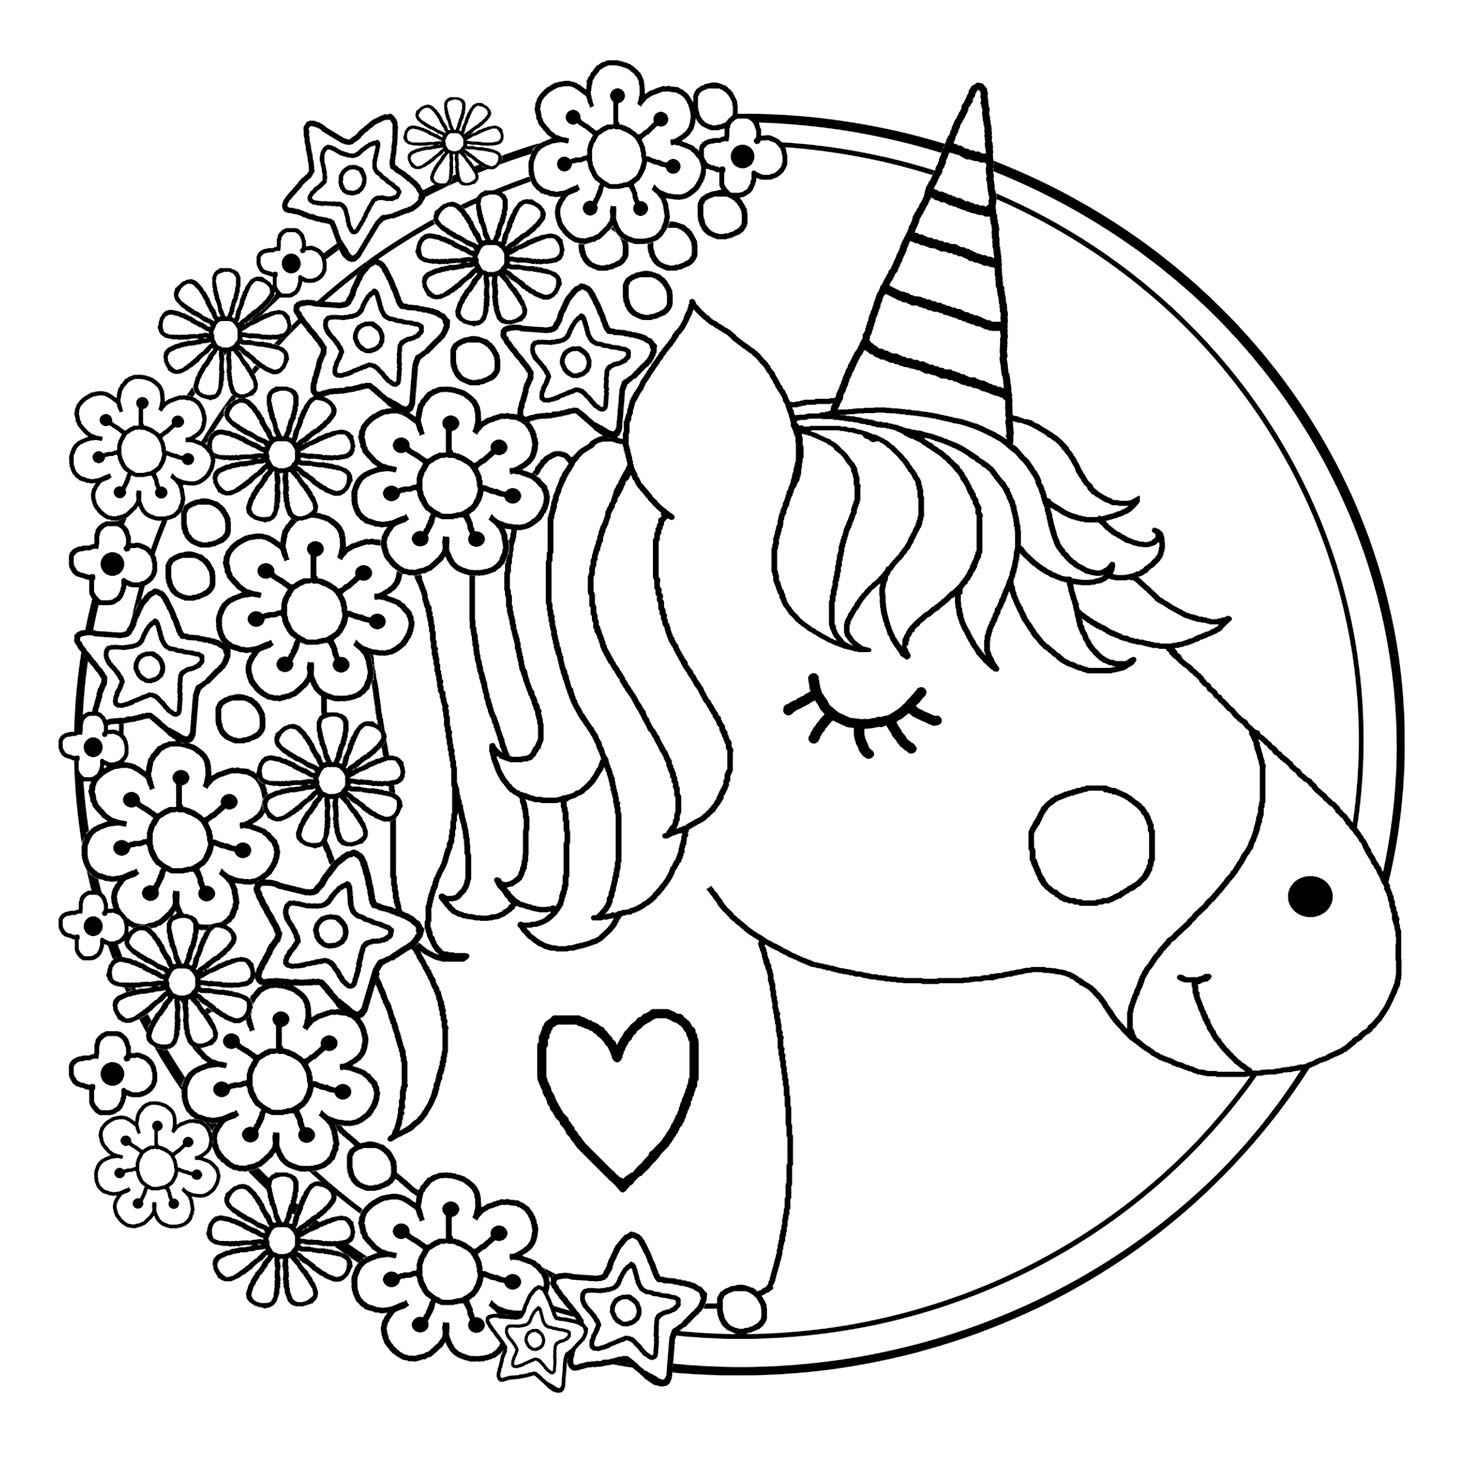 Printable Coloring Pages For Toddlers Printable Coloring Pages ... | 1483x1477